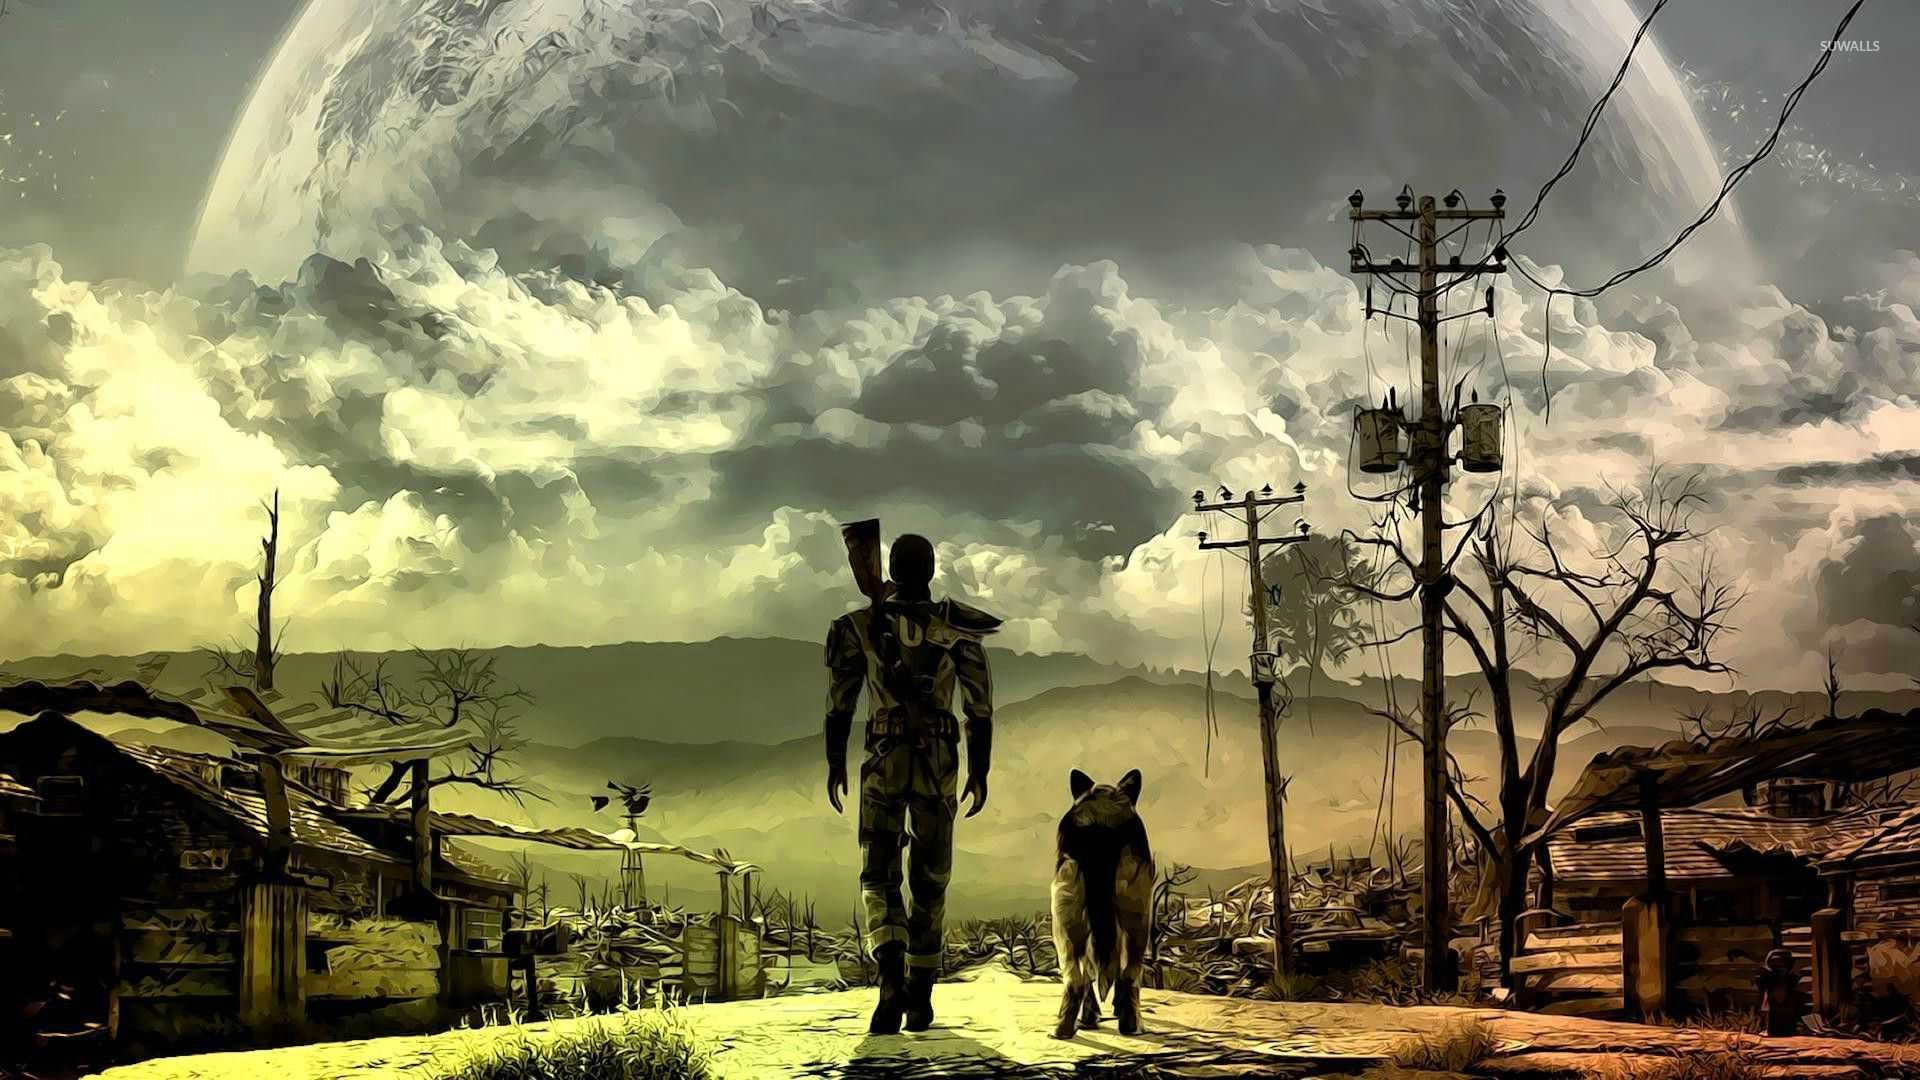 Res: 1920x1080, Fallout Wallpaper  Full Hd High Resolution Of Androids Game